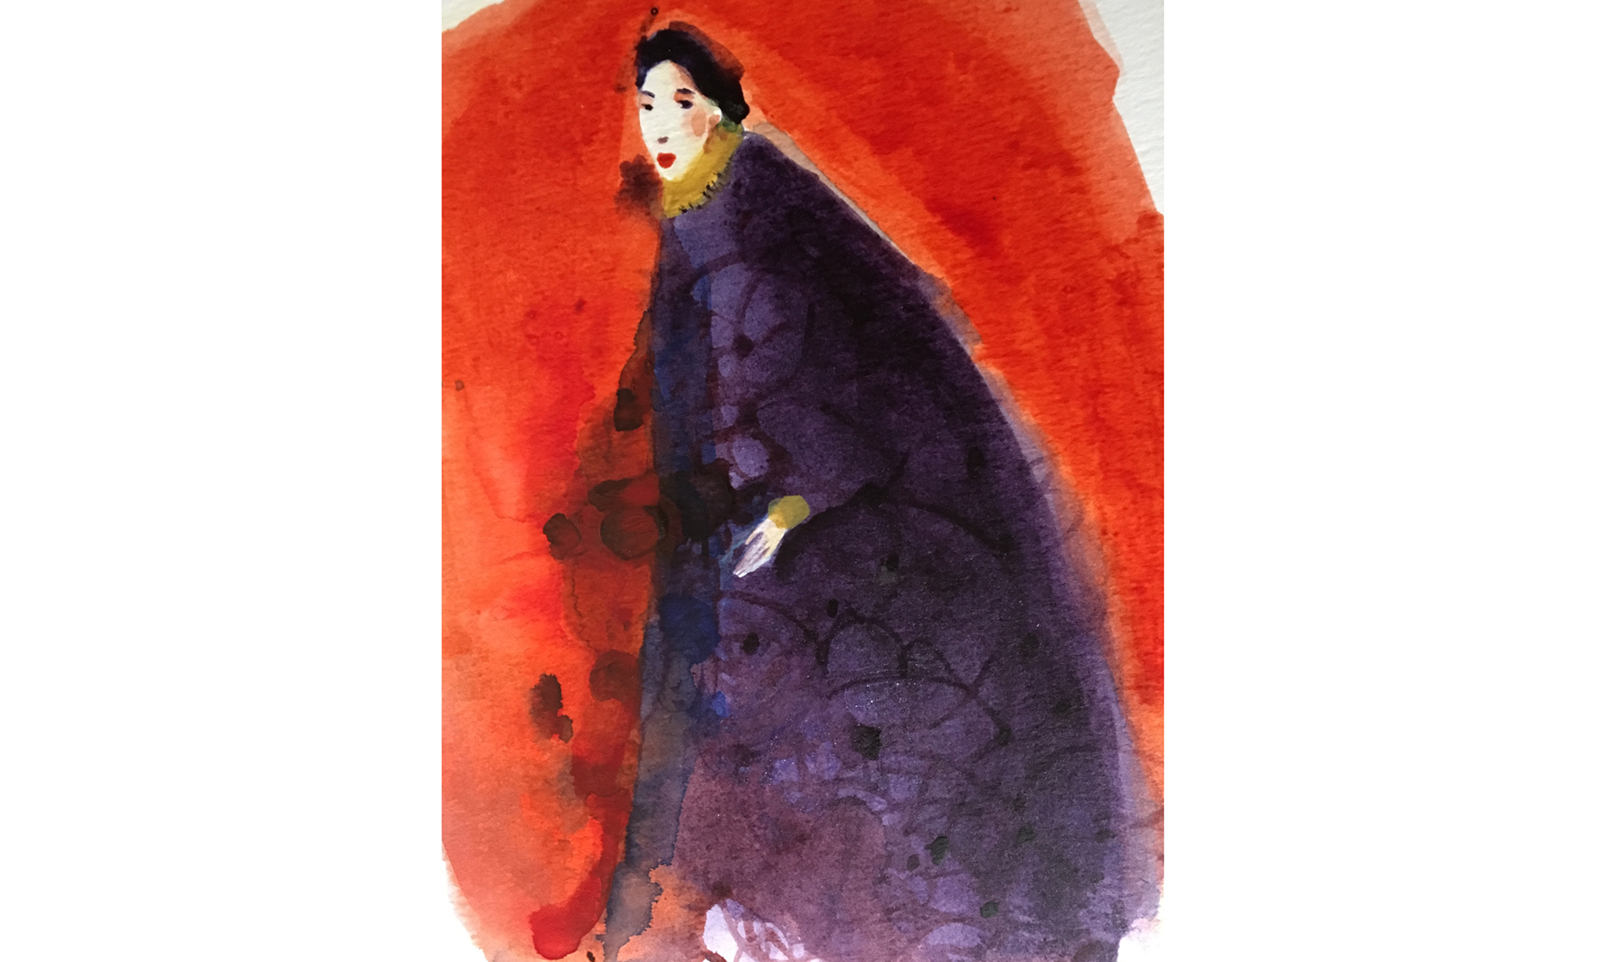 Watercolor illustration, circus, ink, portrait, fashion, sketchbook